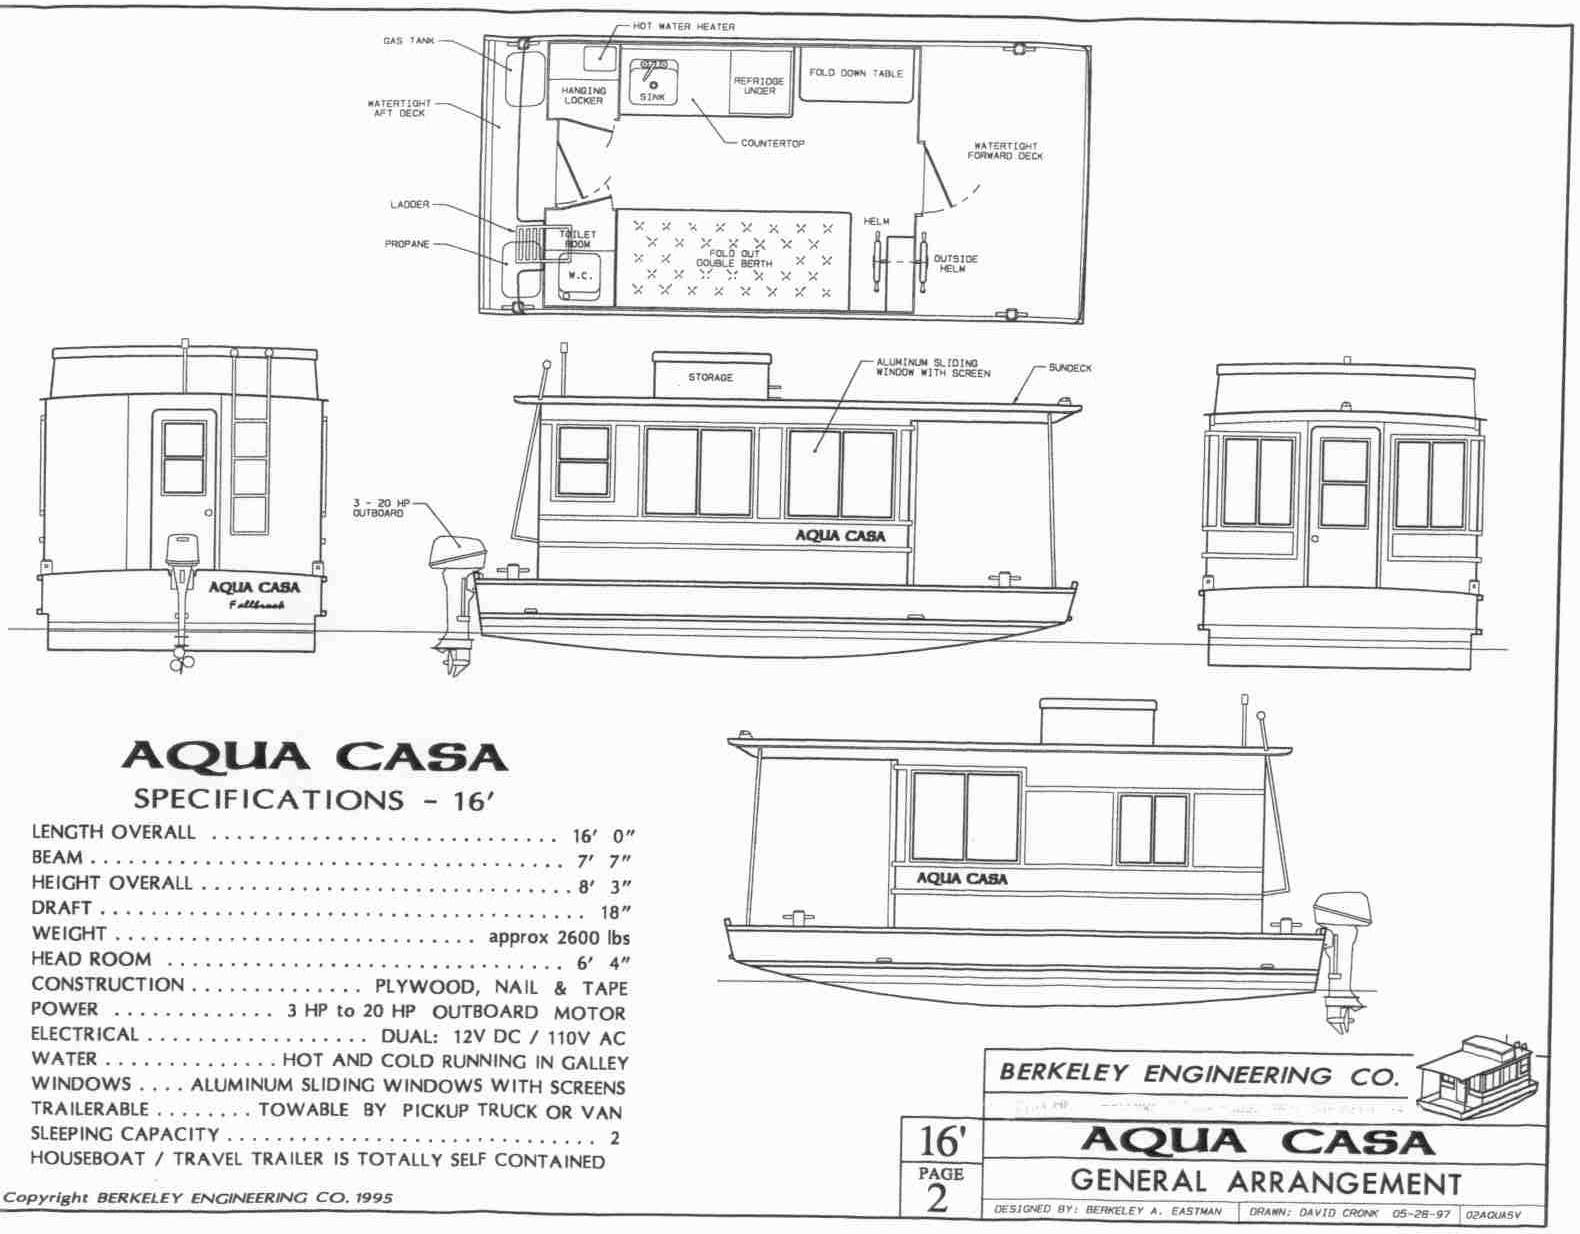 log home plans and designs with Aqua Casa Houseboat on mercial Renderings additionally LV Design PSD54891 besides Abstract Arabic Ornament Vector 7026639 as well Turkish Or Persian Floral Design Vector 9688811 in addition Design Monochrome Twirl Movement Illusion Background Vector 9976121.